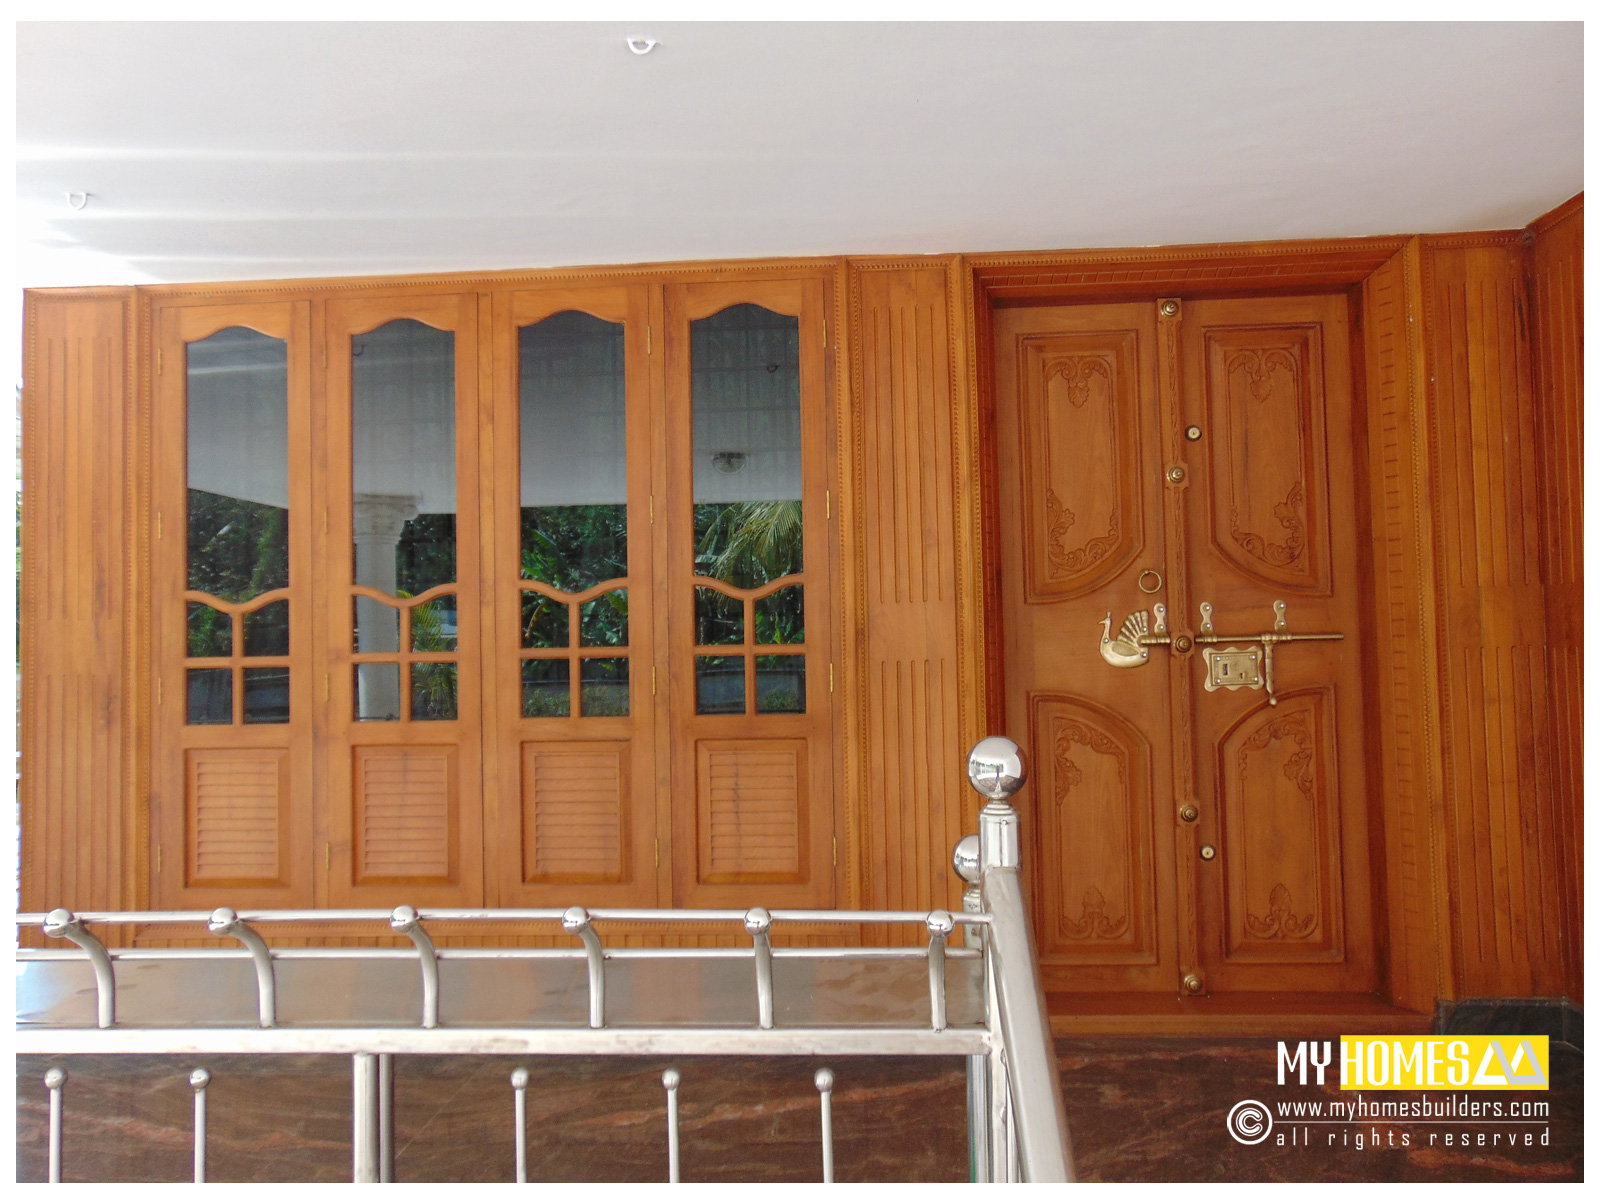 Single and double style door design kerala for house in india for Wooden single door design for home